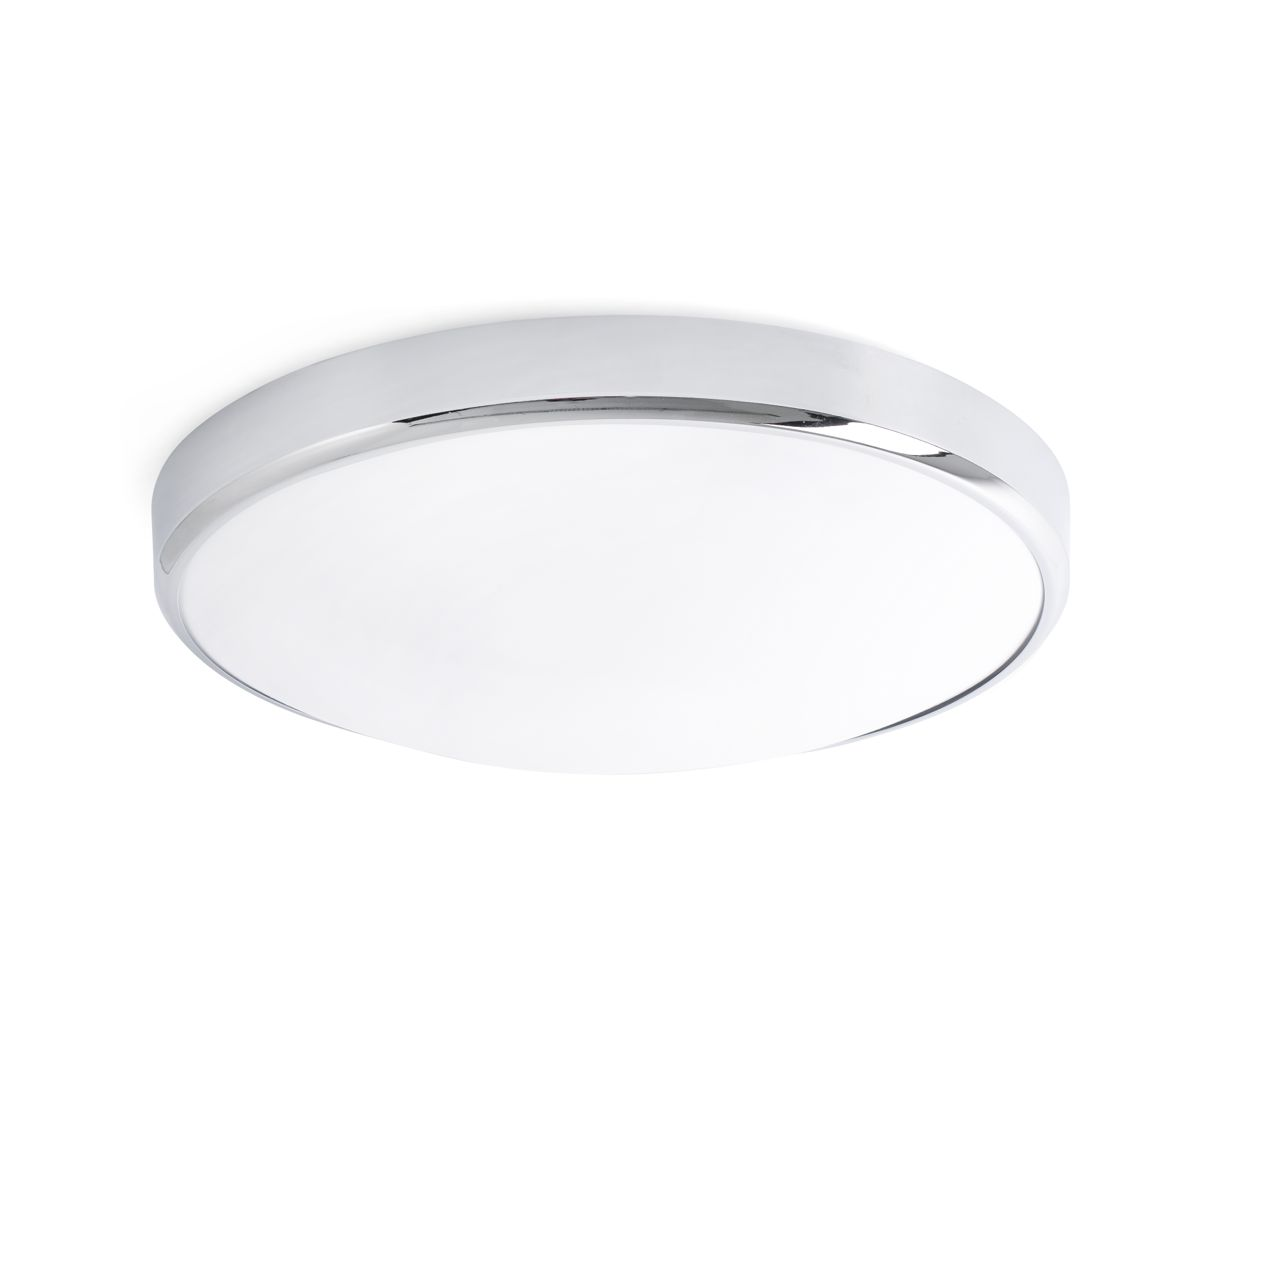 Comprar aplique de techo para ba os con led comprar for Ventiladores de pared leroy merlin